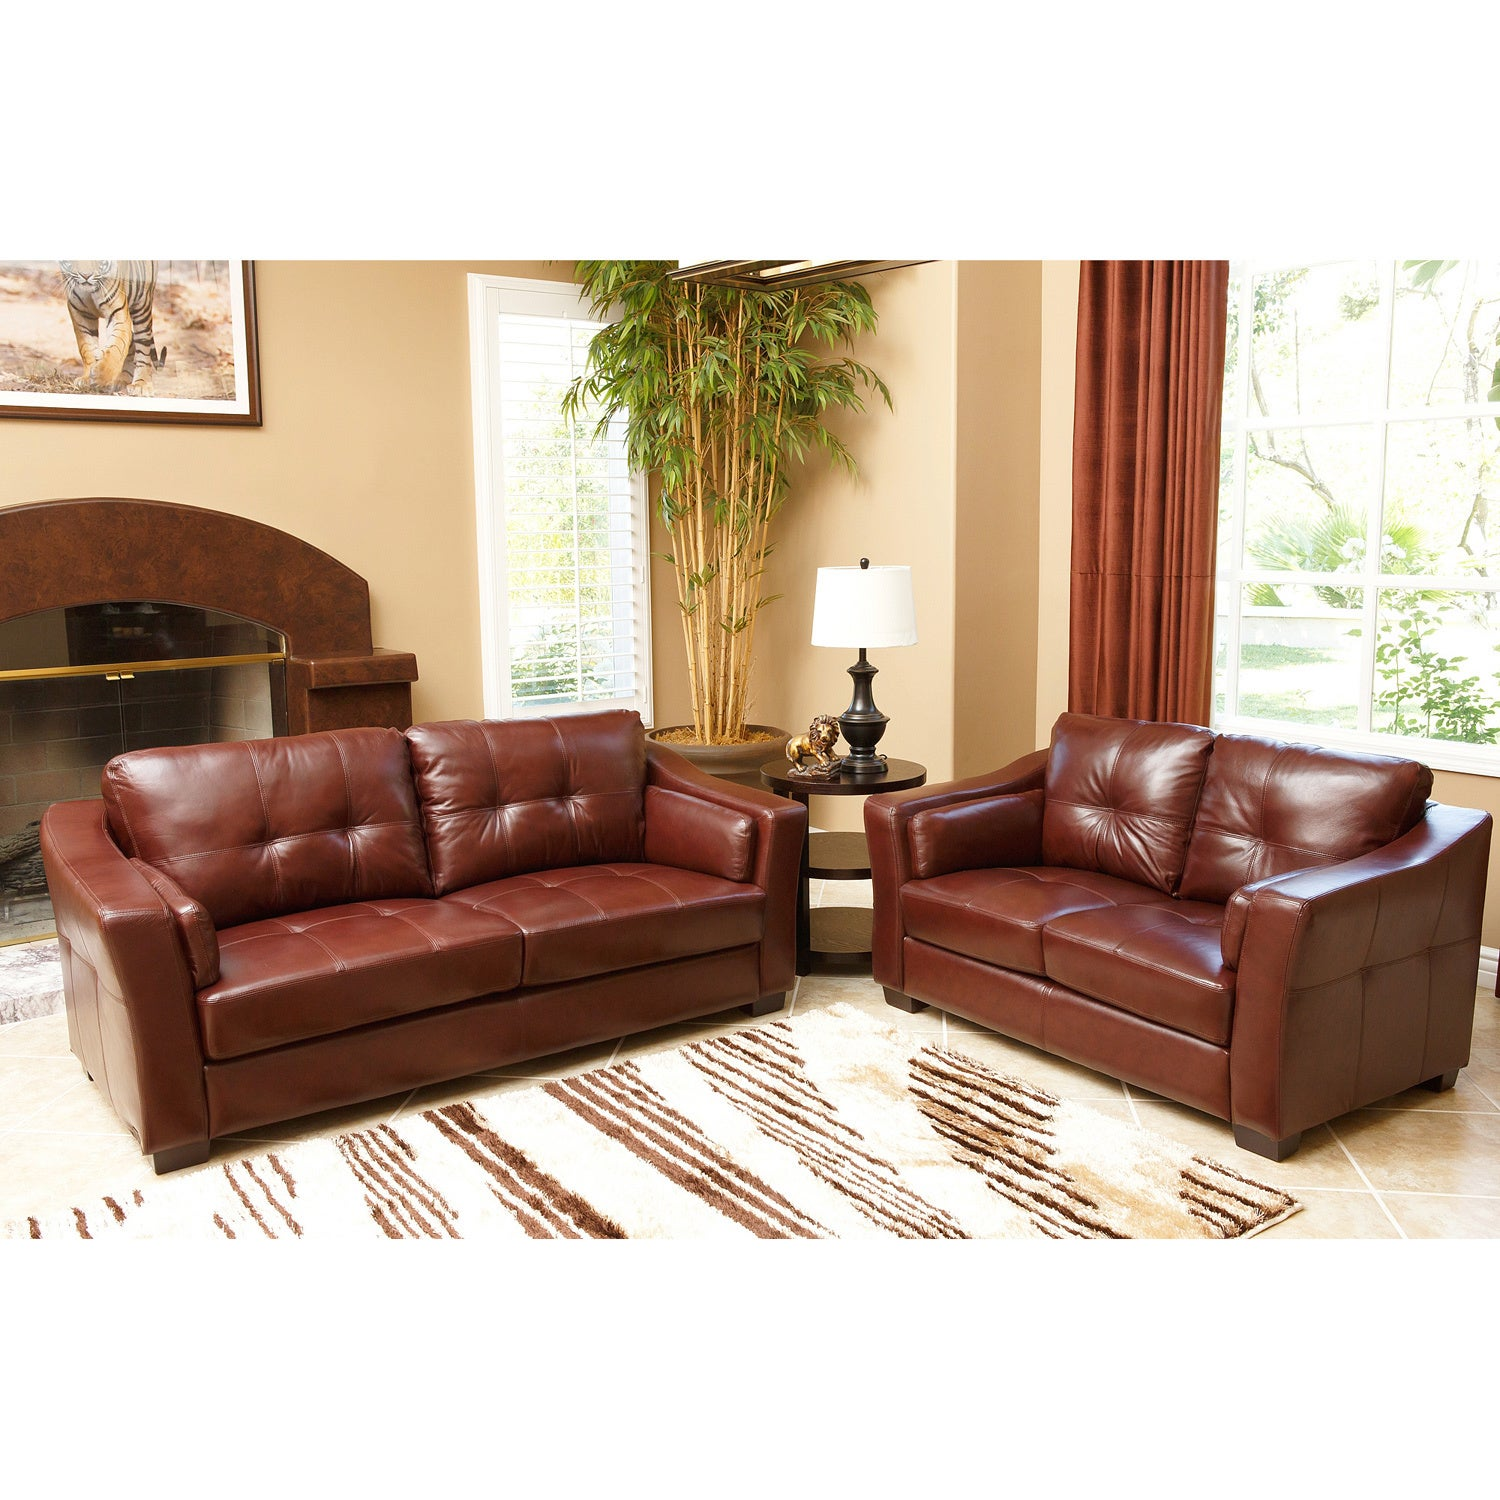 Abbyson Torrance Burgundy Top Grain Leather Sofa and Loveseat Set